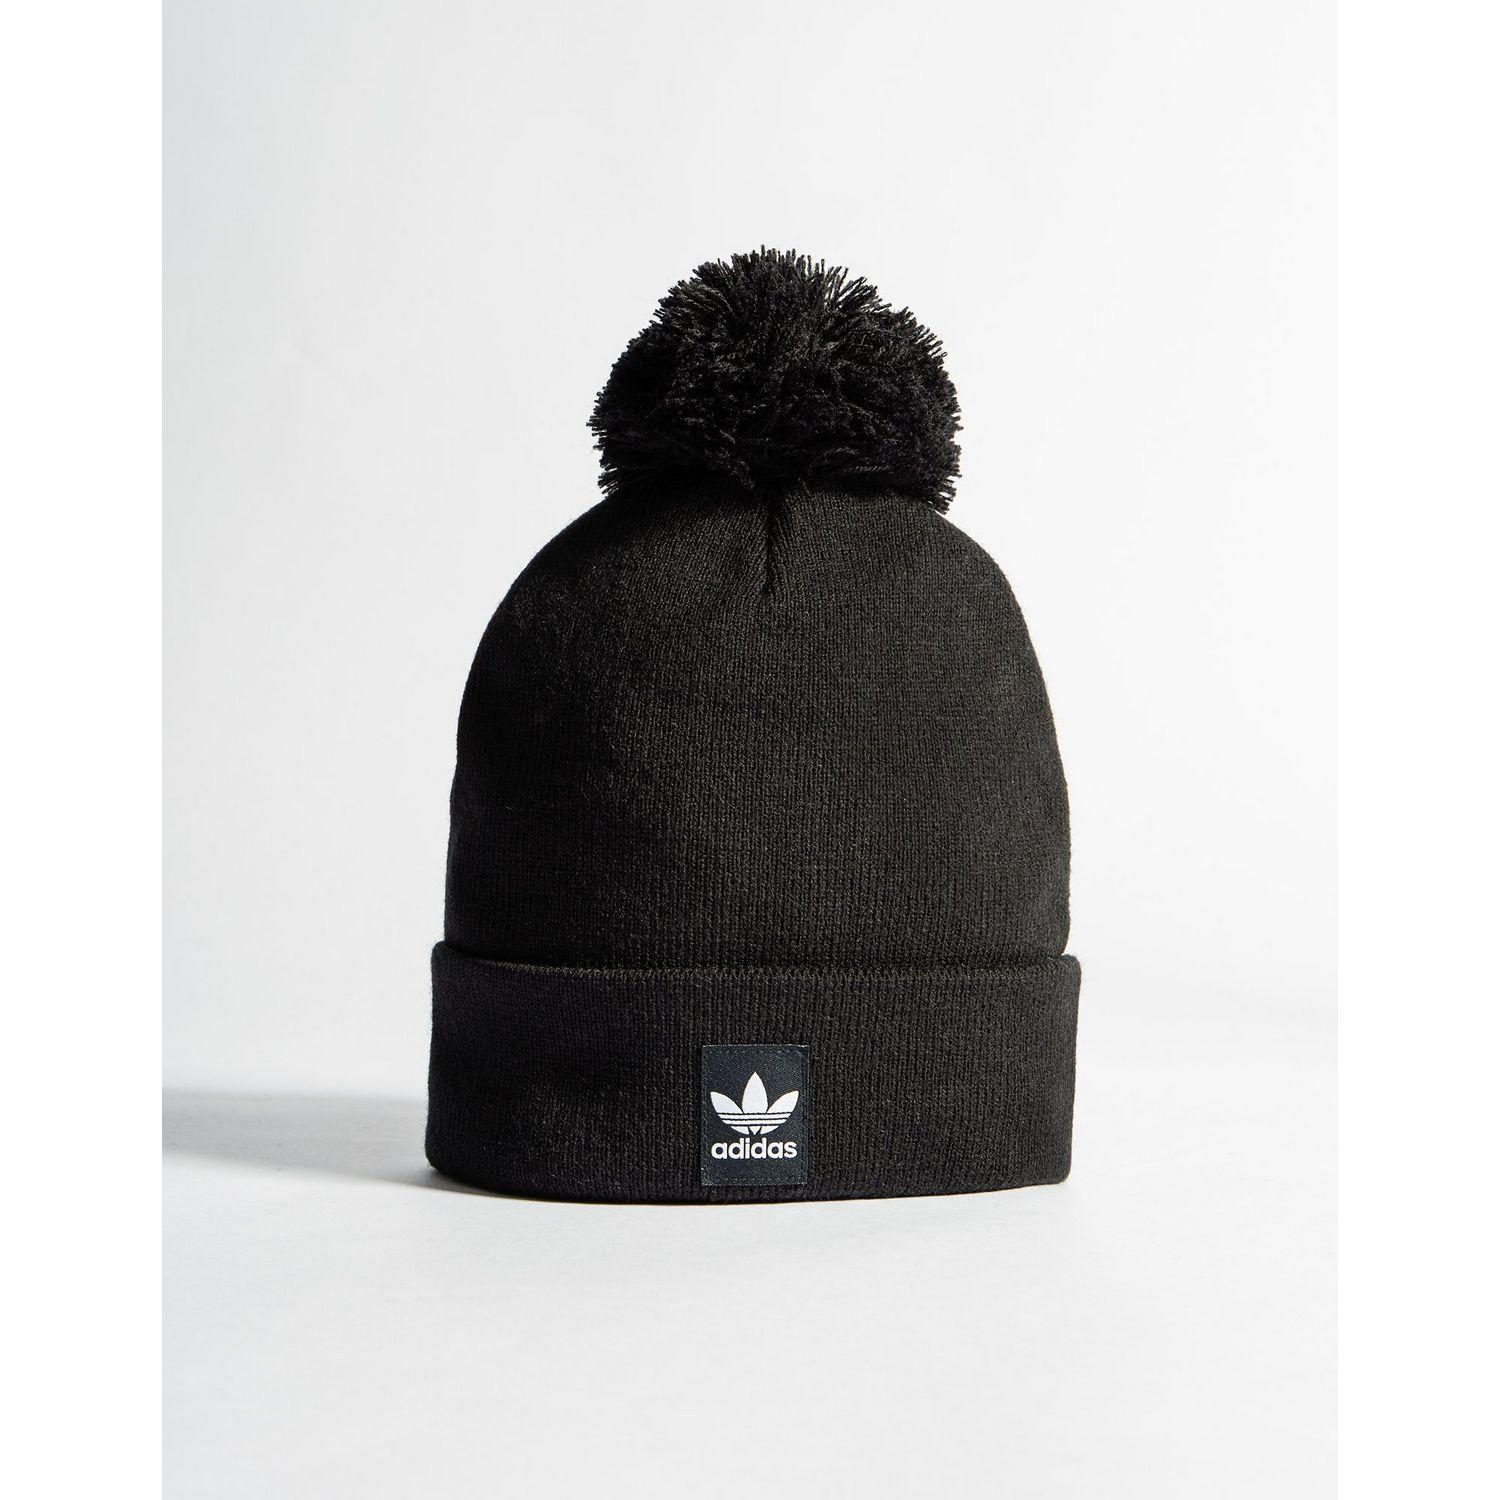 Lyst - adidas Originals Logo Pom Beanie in Black for Men b414acb50918